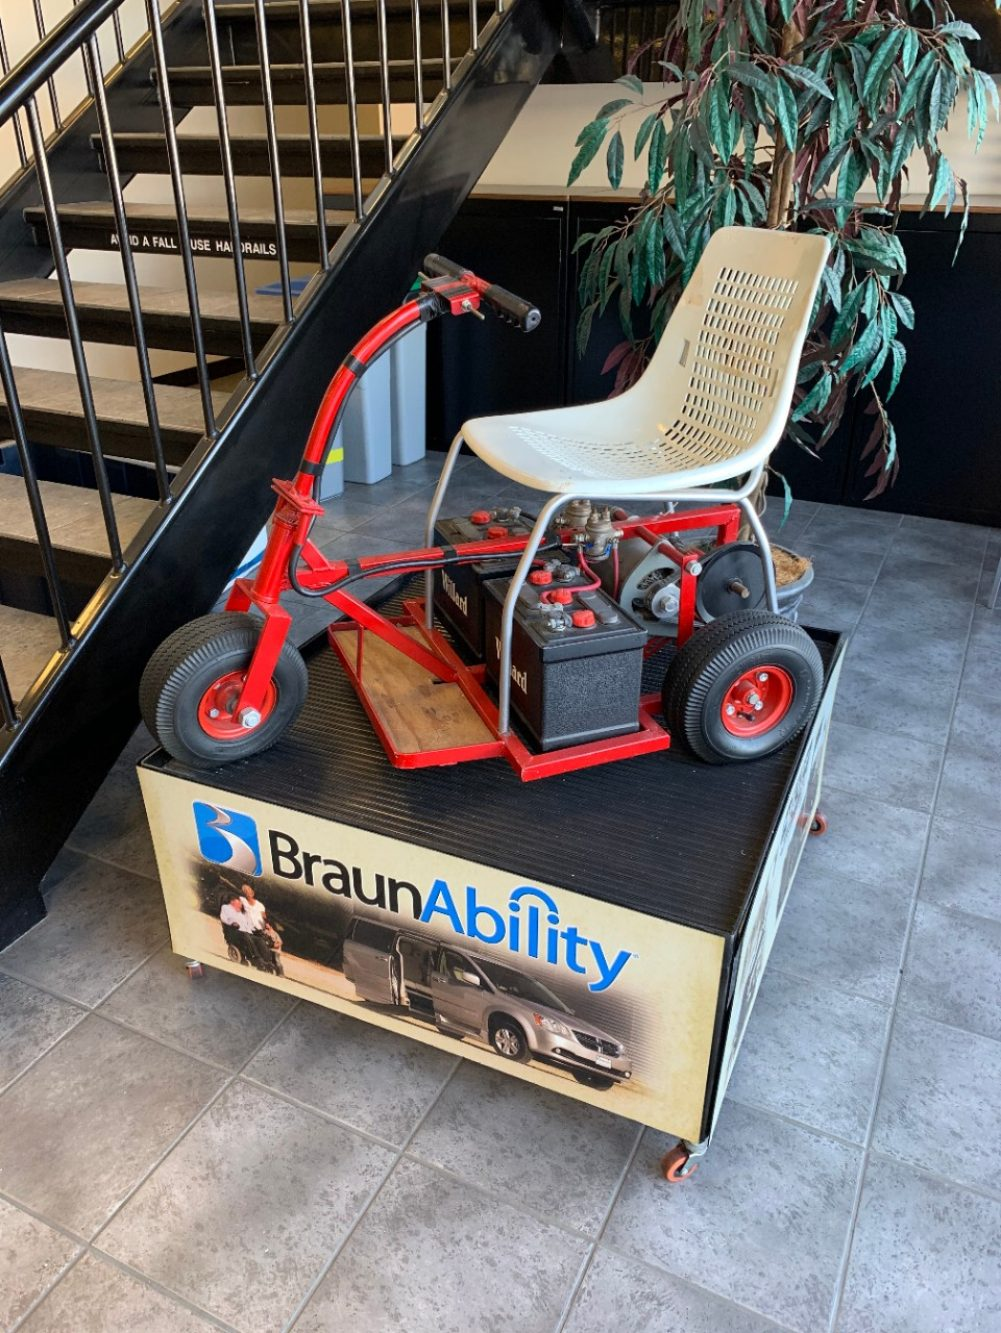 Ralph Braun early prototype of Tri-Wheeler, motorized wheelchair